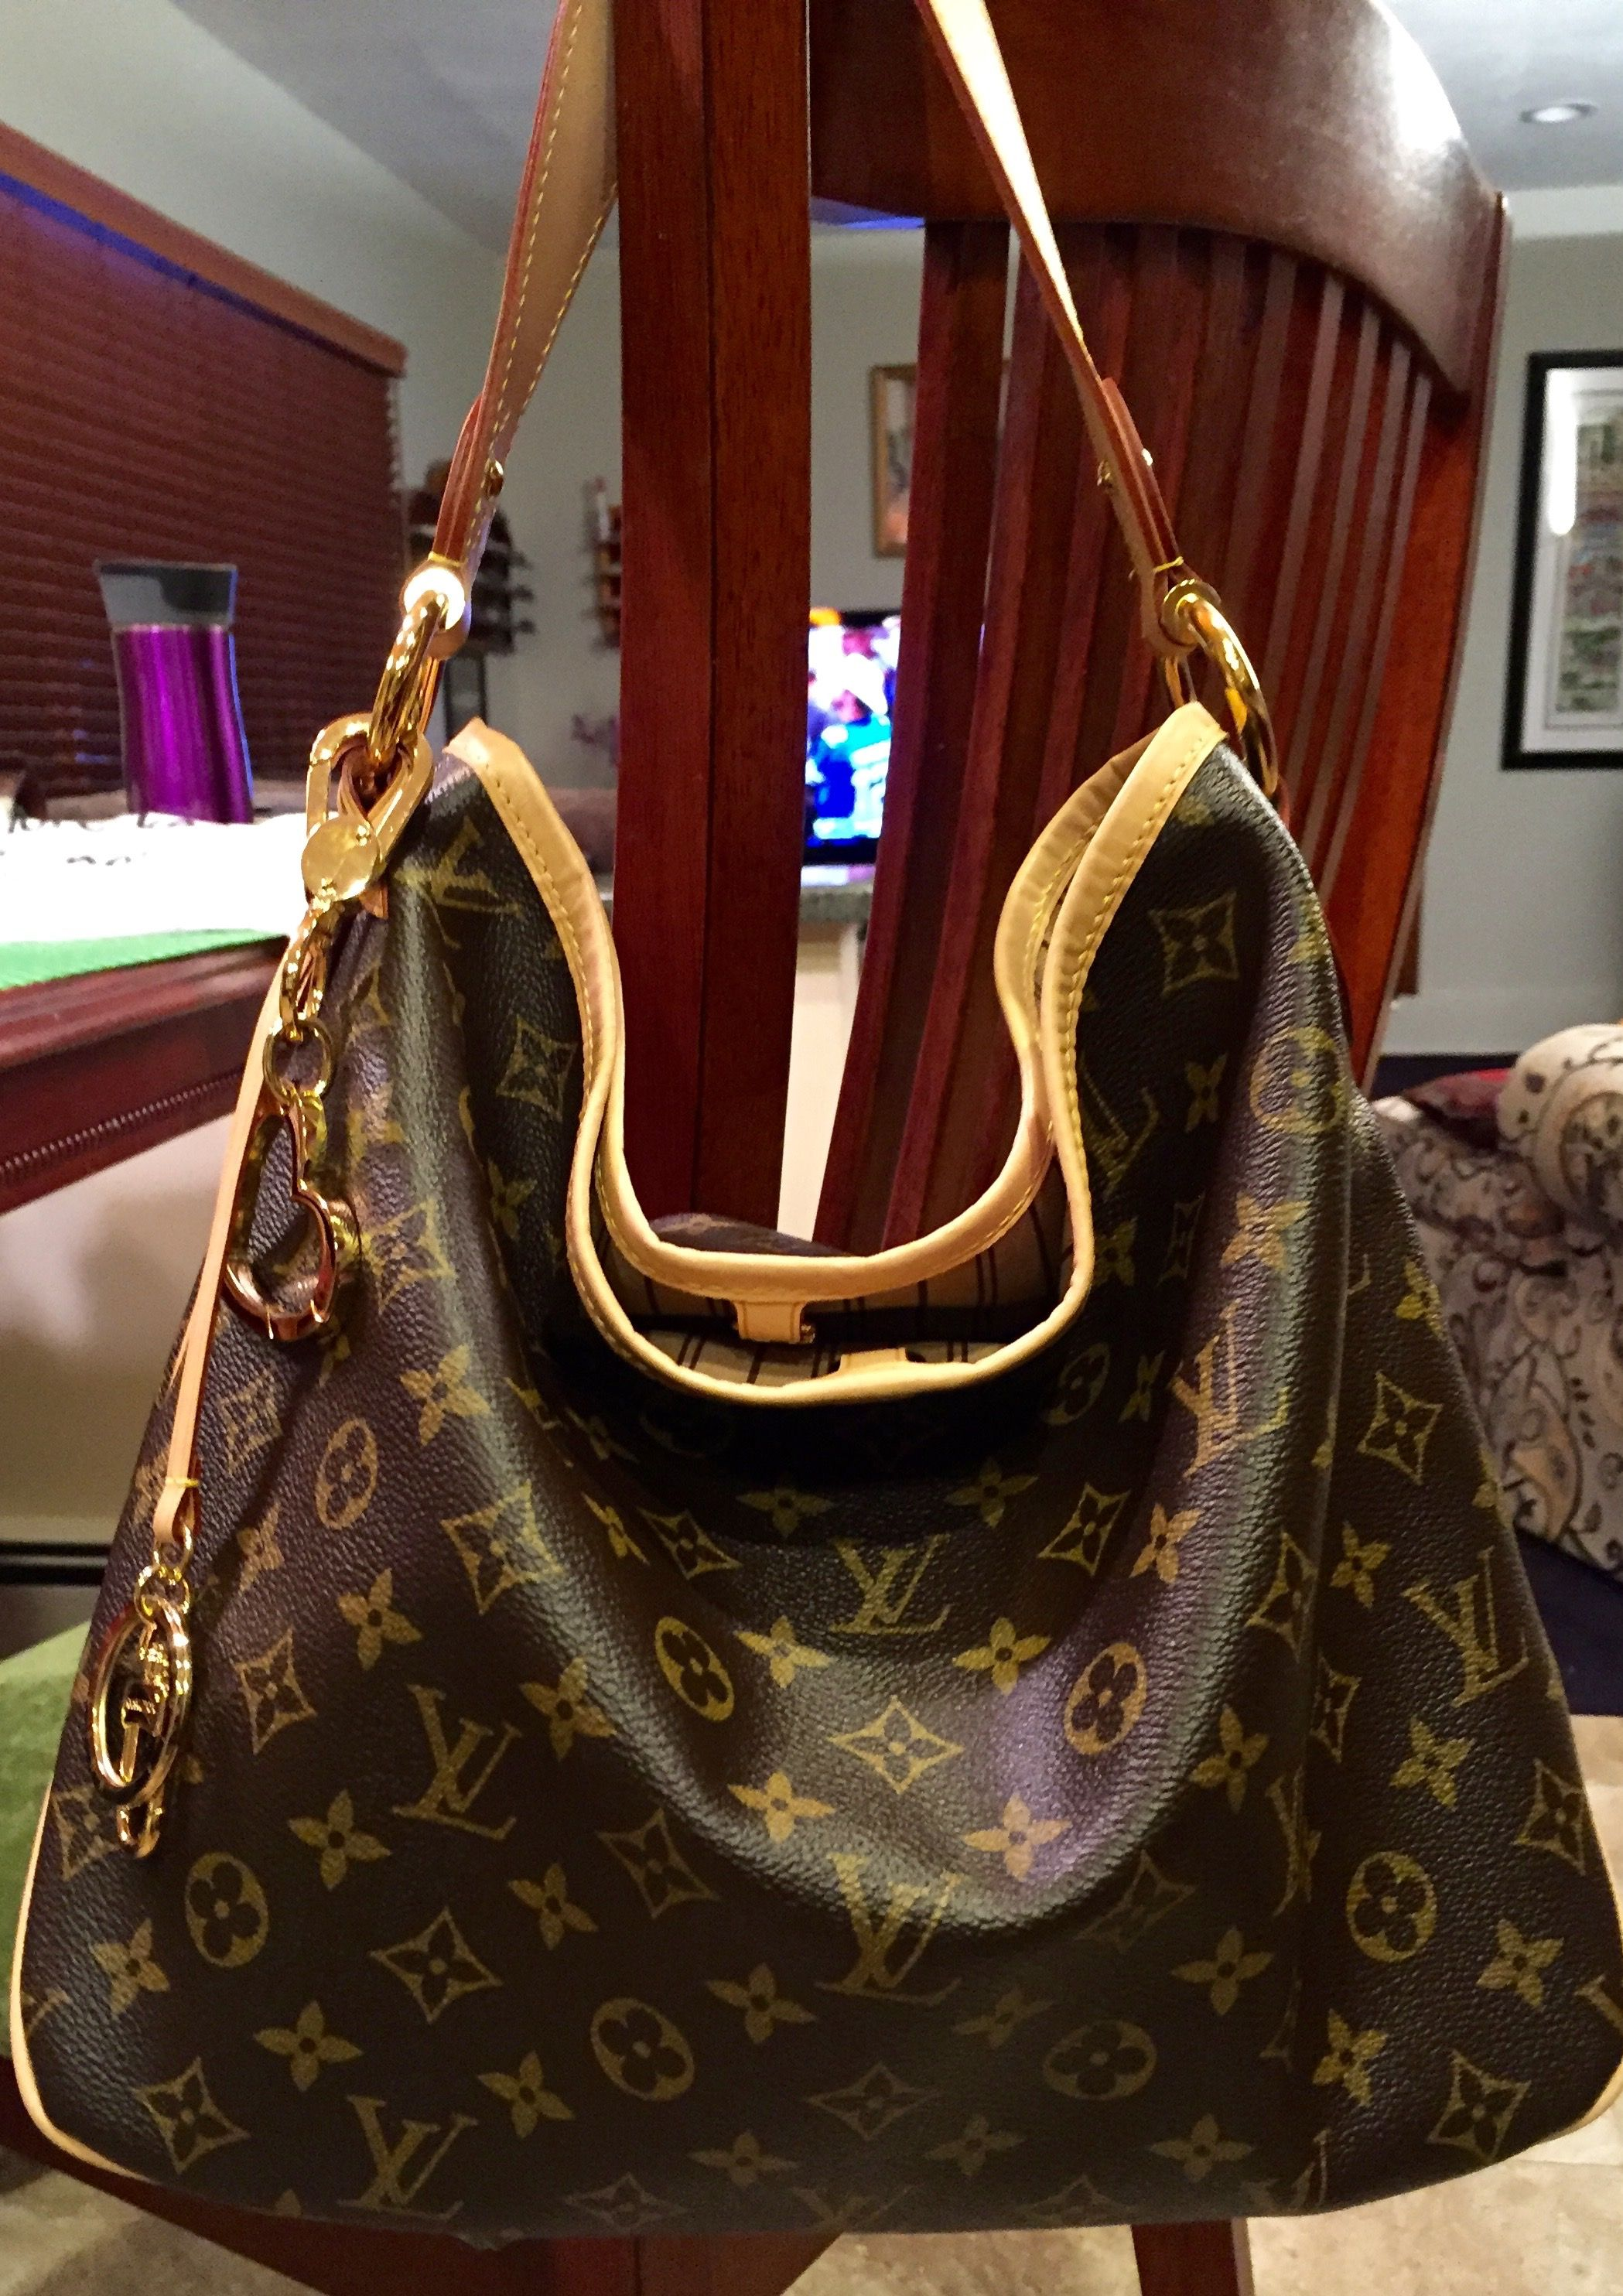 862f8f9c30c6 LOVE the new style of the hobo Louis Vuitton Delightful. Had it in Damier  Azur for summer and now in mono. SO easy to carry  love the short strap and  roomy ...